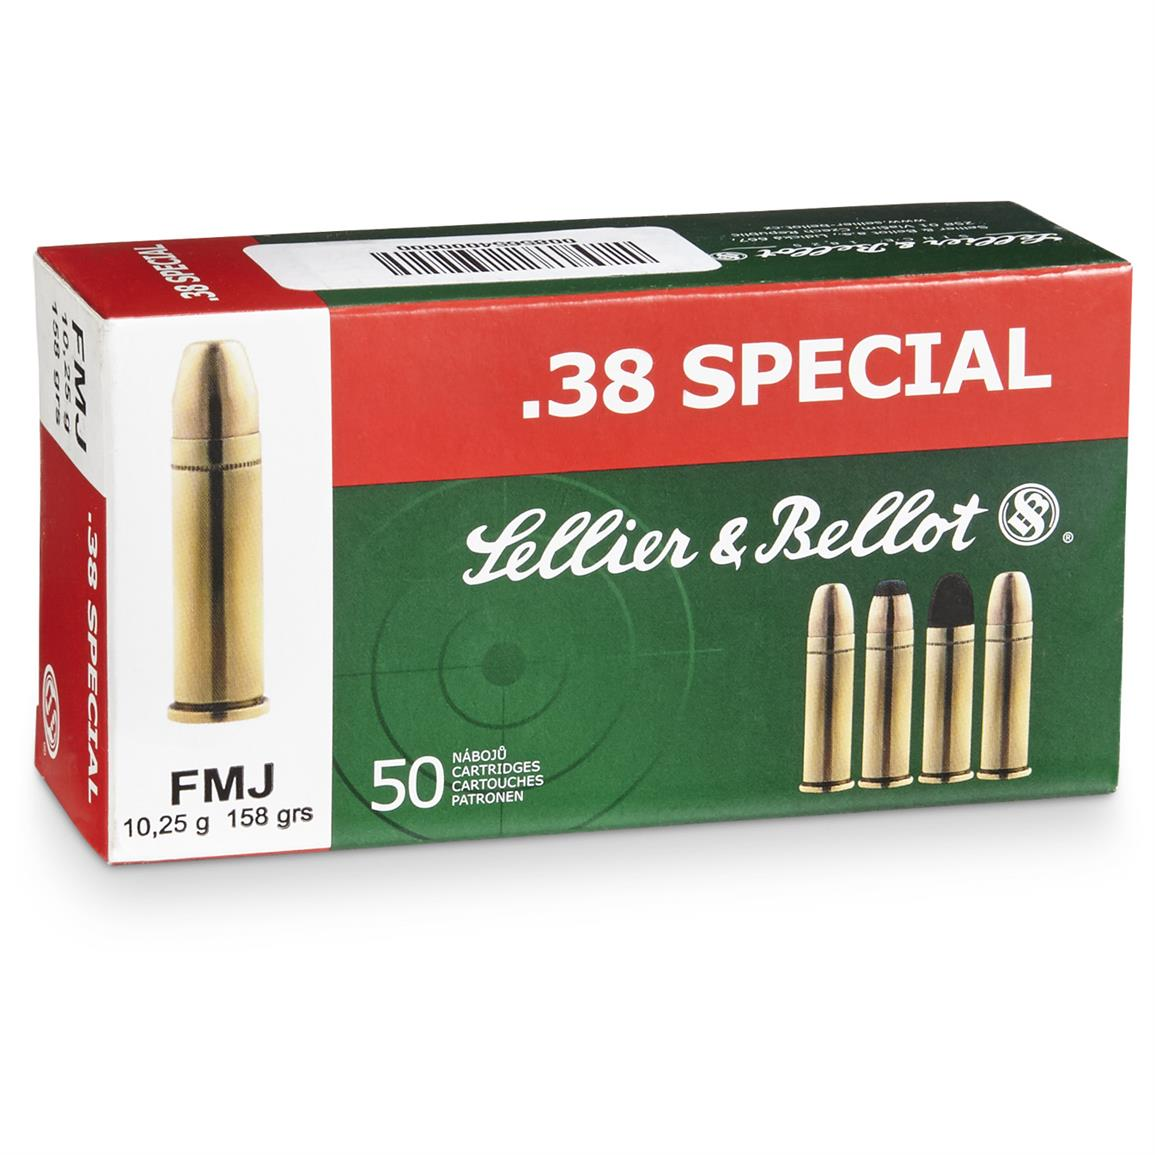 Sellier & Bellot .38 Special, FMJ, 158 Grain, 1,000 Rounds